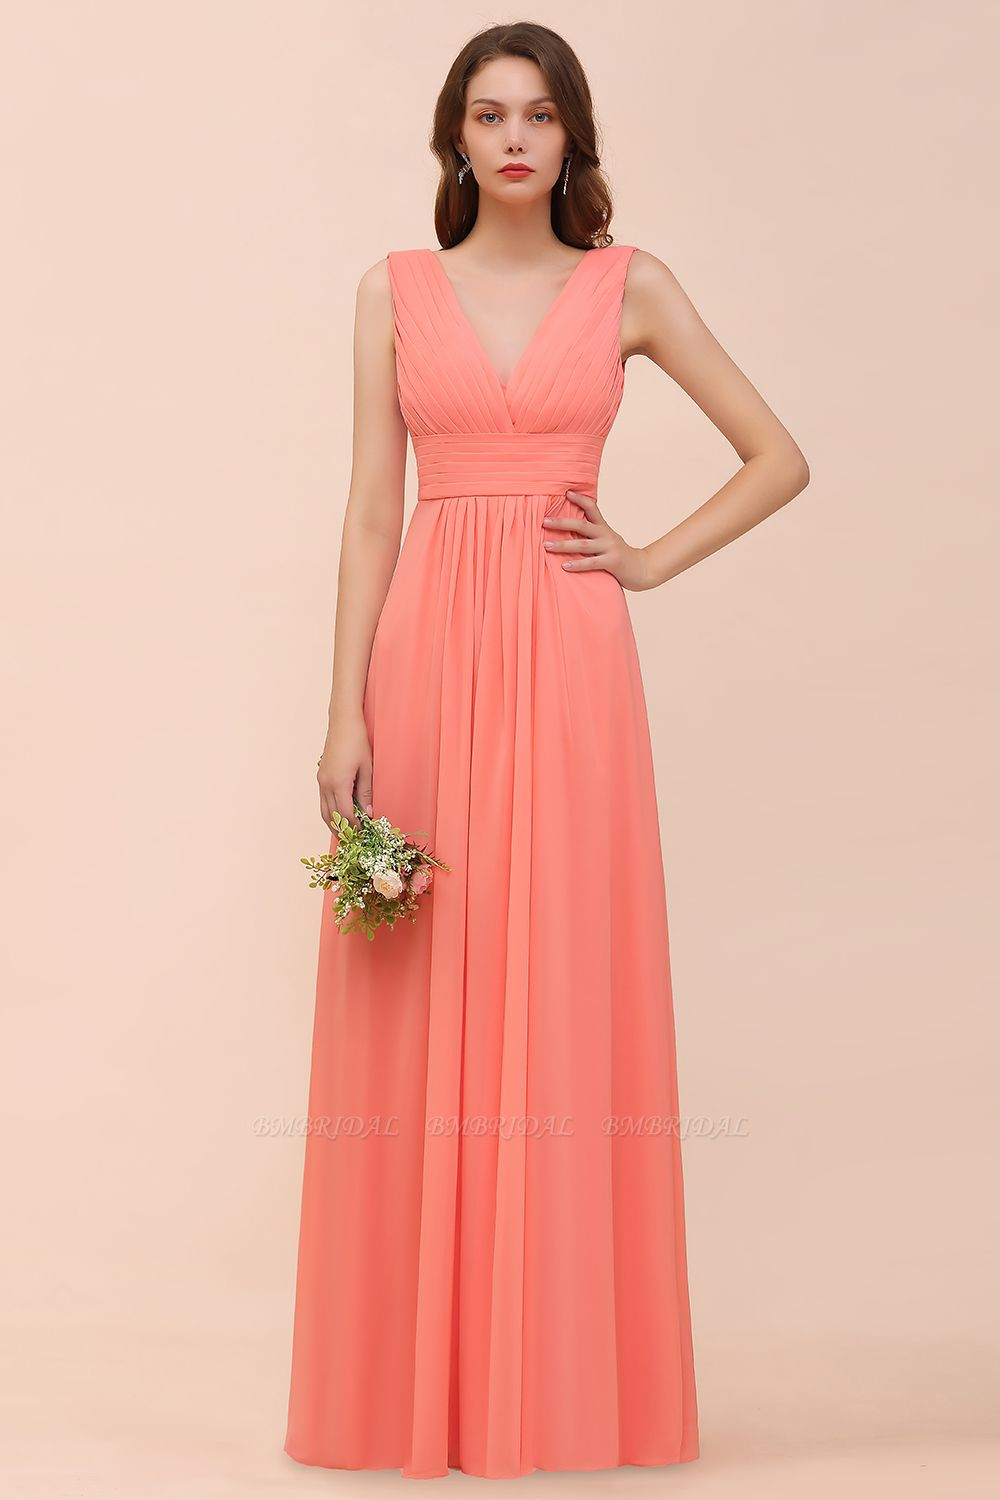 Elegant V-Neck Ruffle Coral Chiffon Cheap Bridesmaid Dresses Online